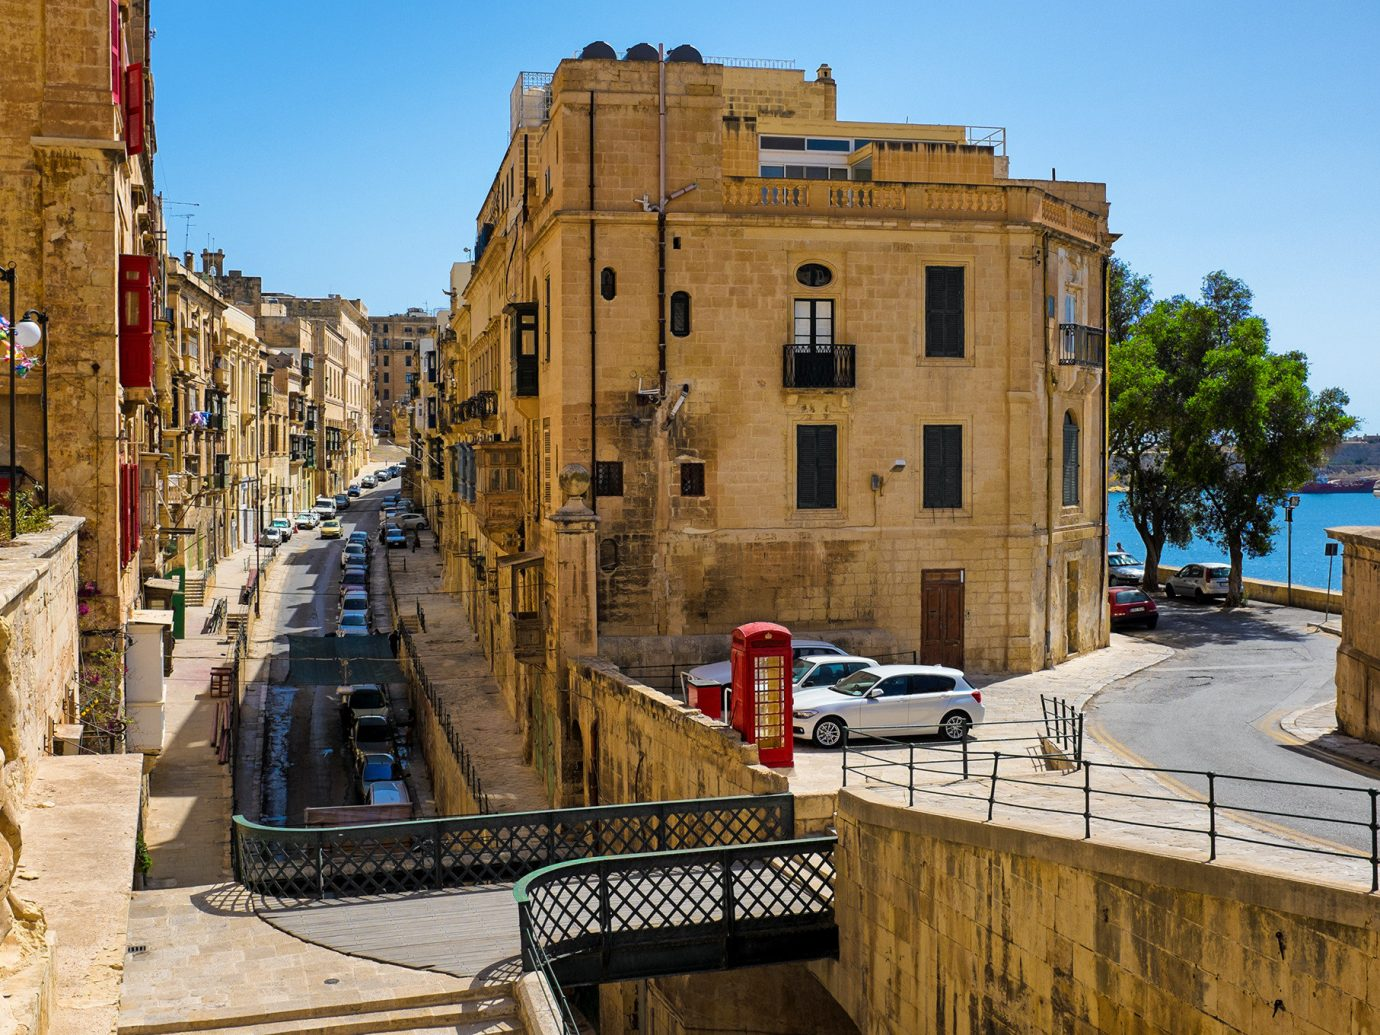 europe Trip Ideas building sky outdoor Town landmark urban area wall human settlement Architecture vacation ancient history tourism street waterway travel cityscape stone